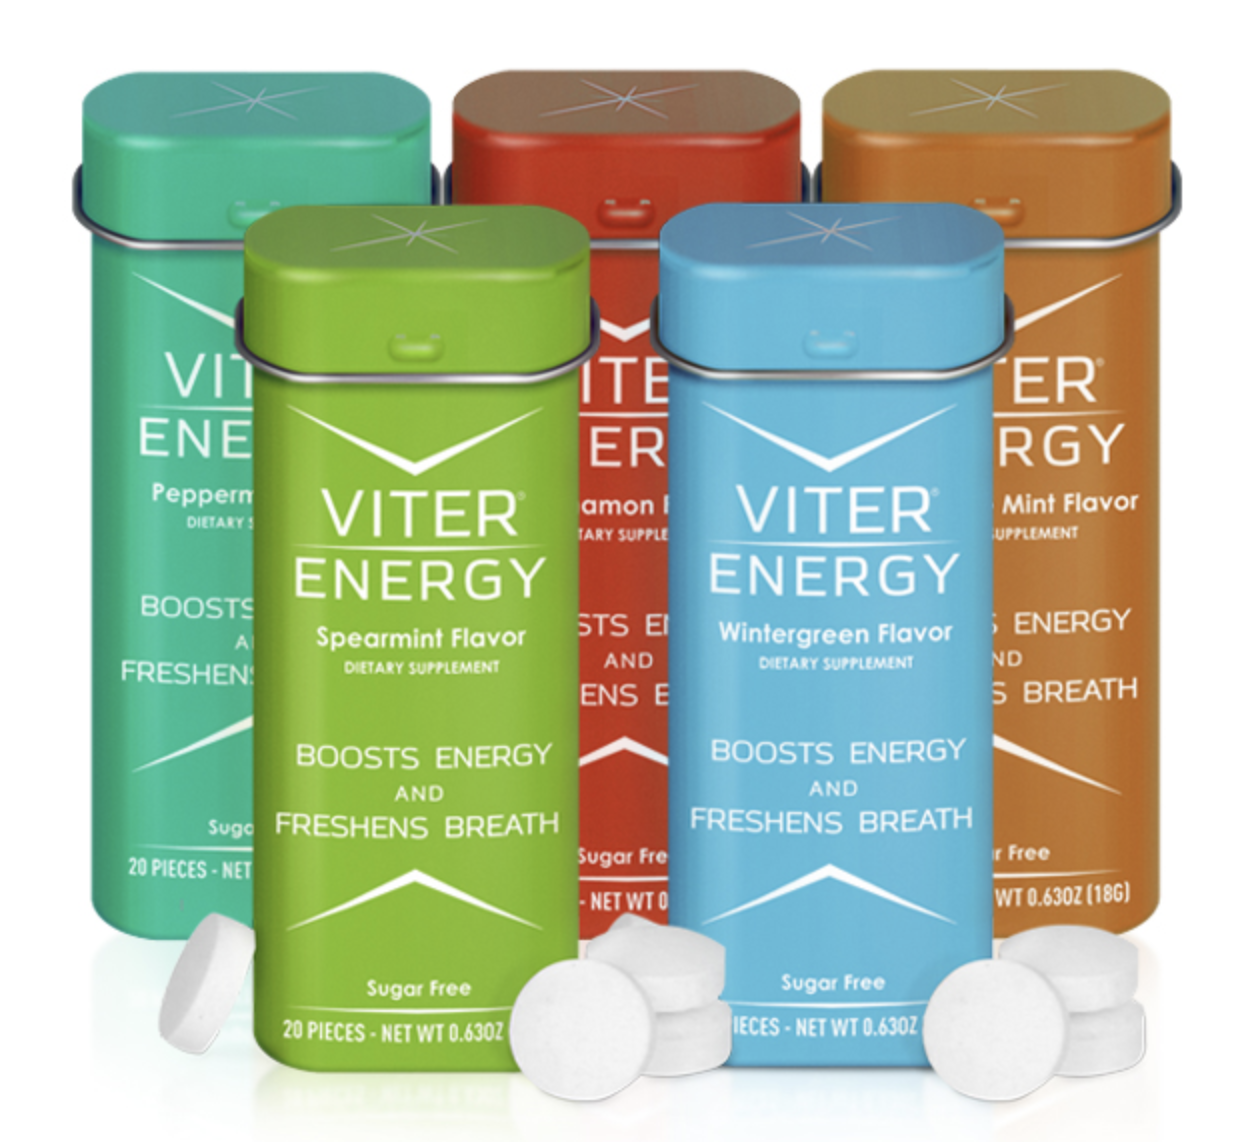 the variety pack of viter energy caffeinated mints